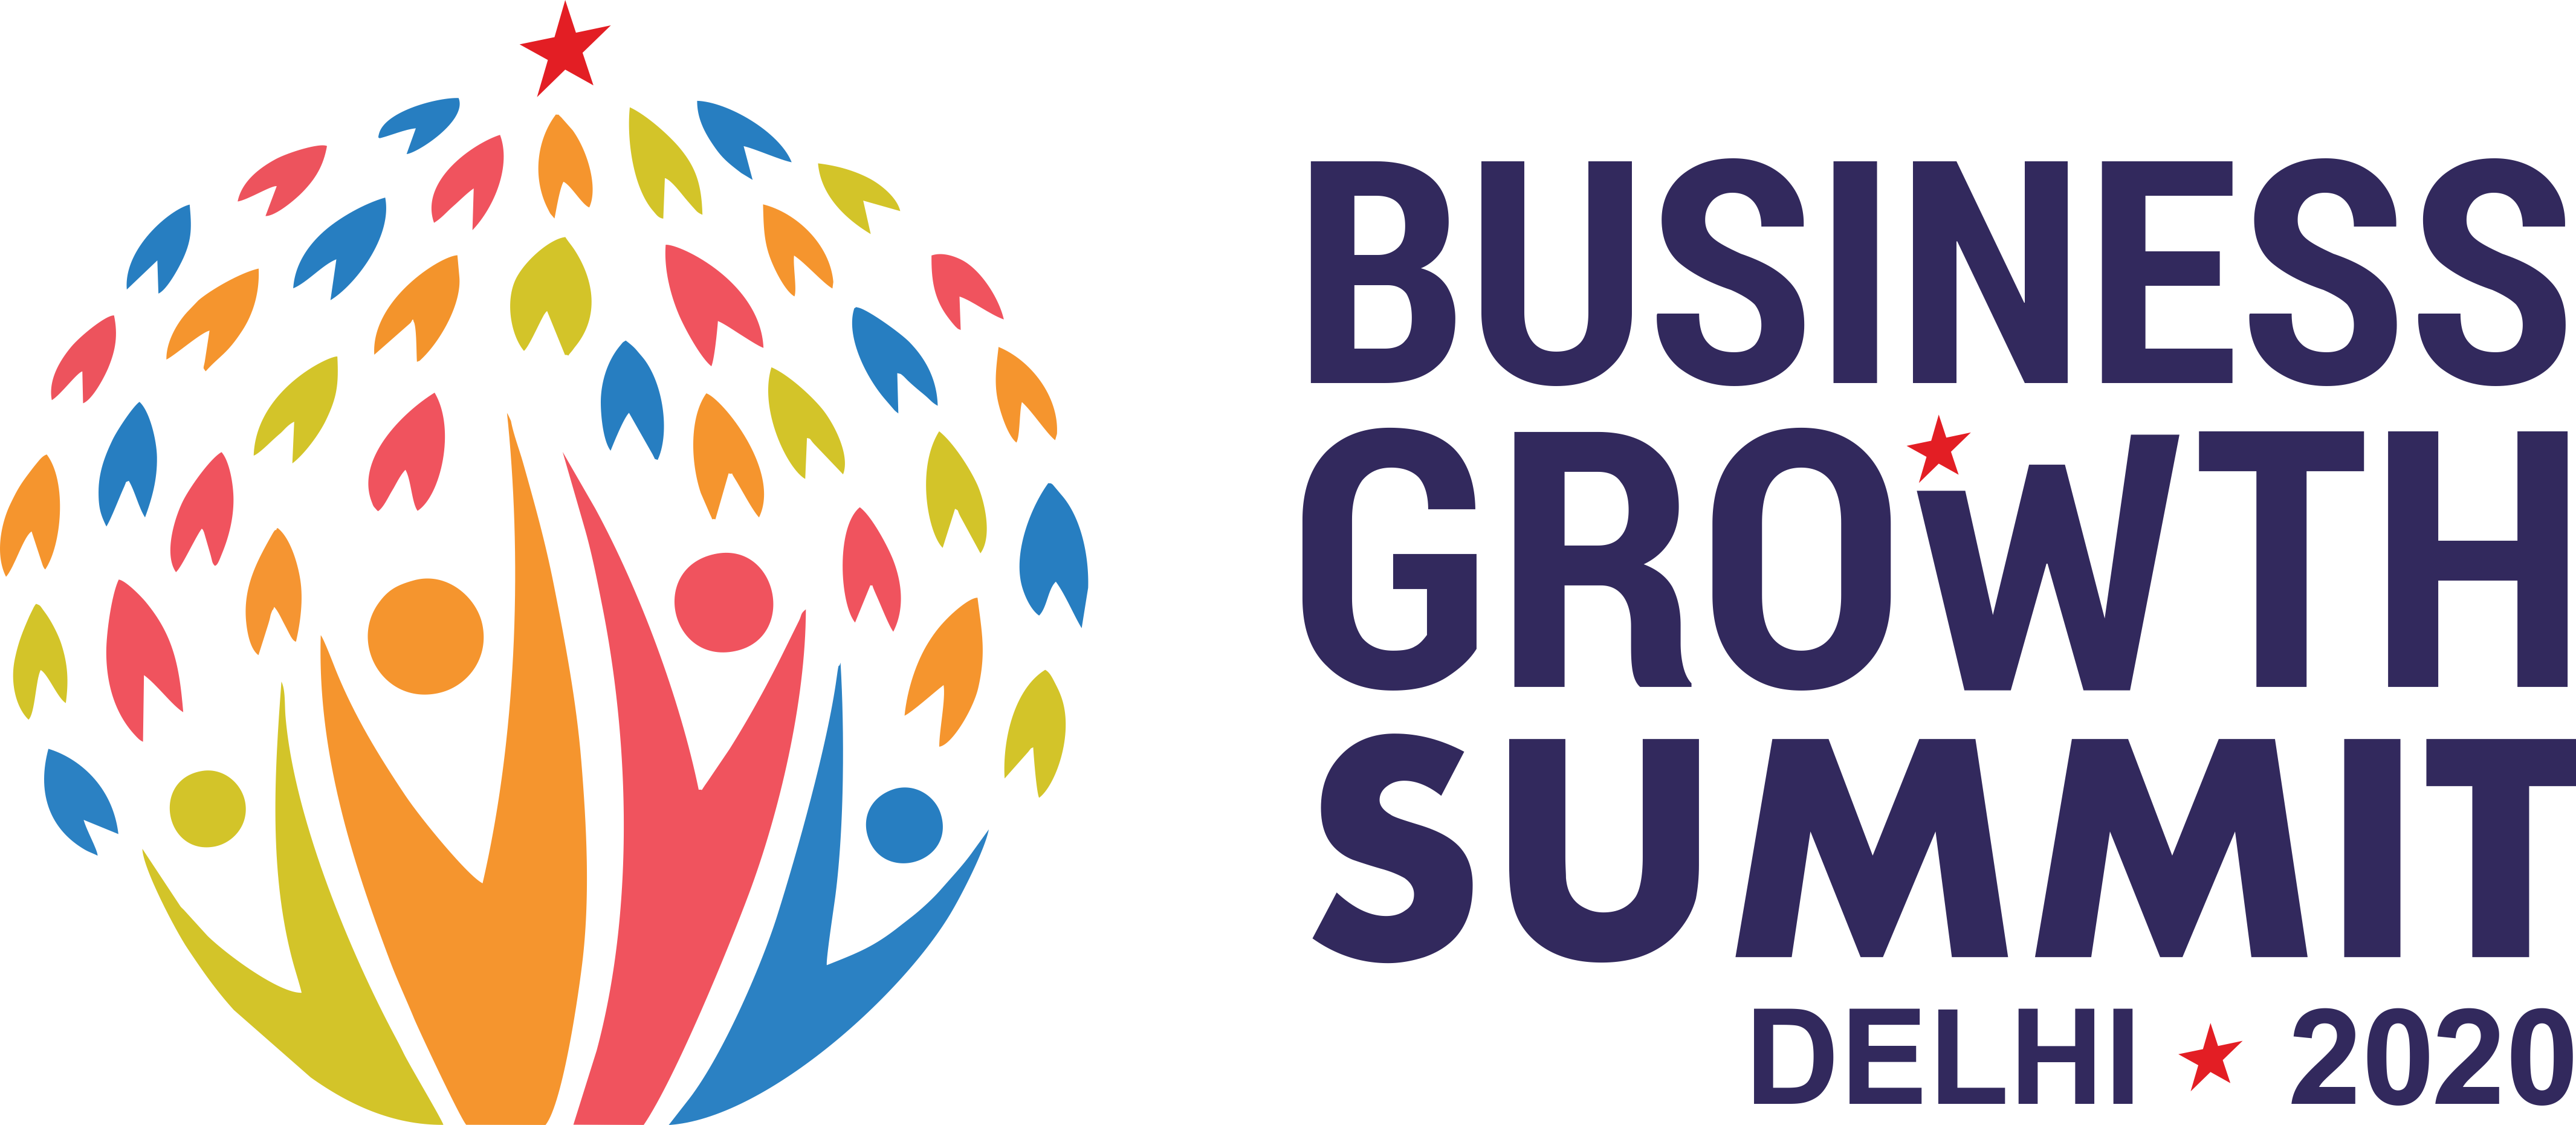 Business Growth Summit Delhi 2020 Business Growth Summit Delhi 2020 Scale Your Start Up With Simple Strategies The Economic Times